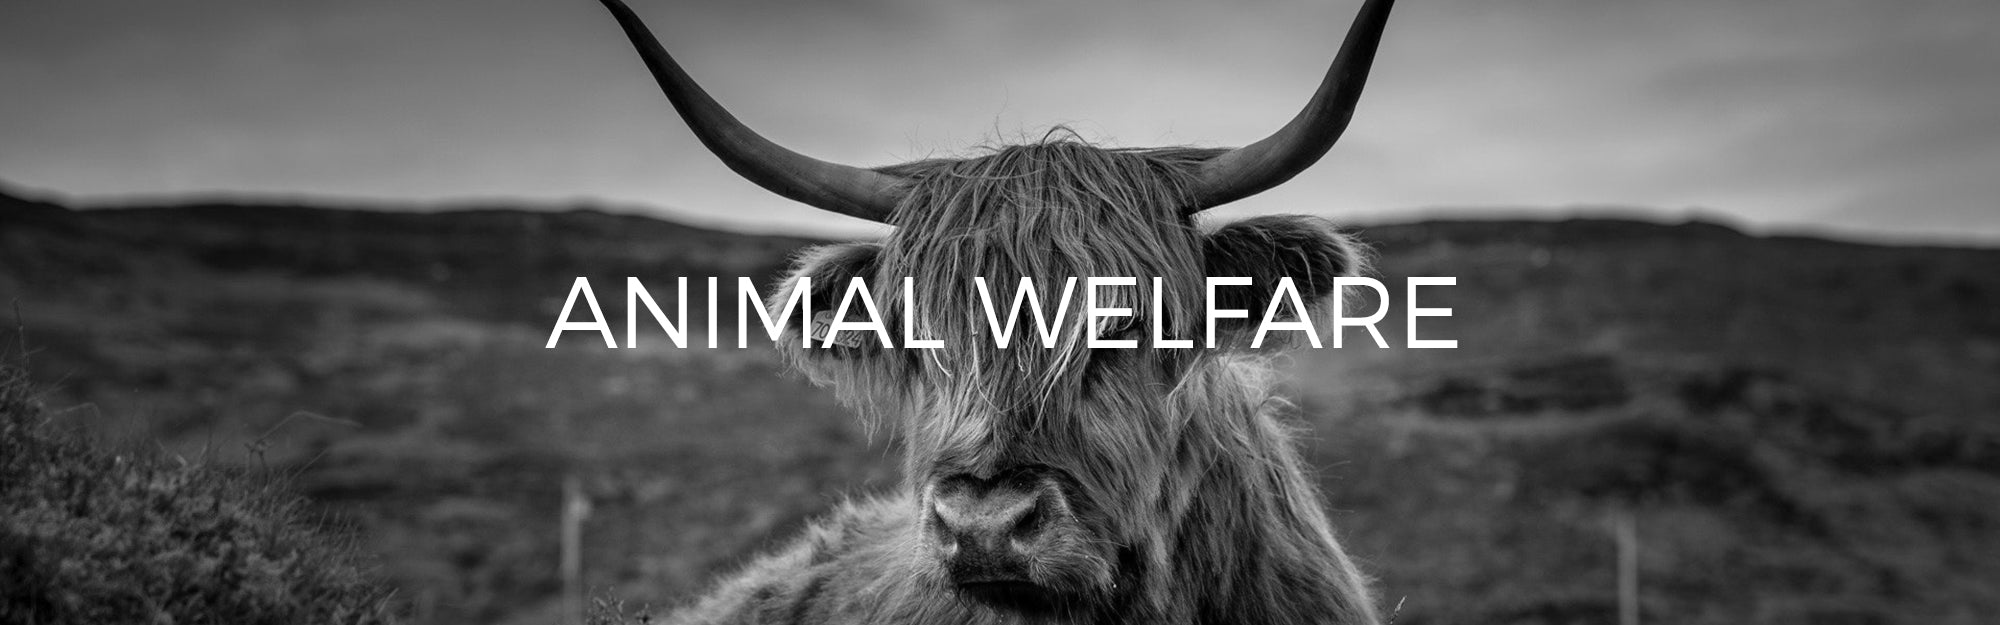 Audio Architect Apparel Animal Welfare Policy